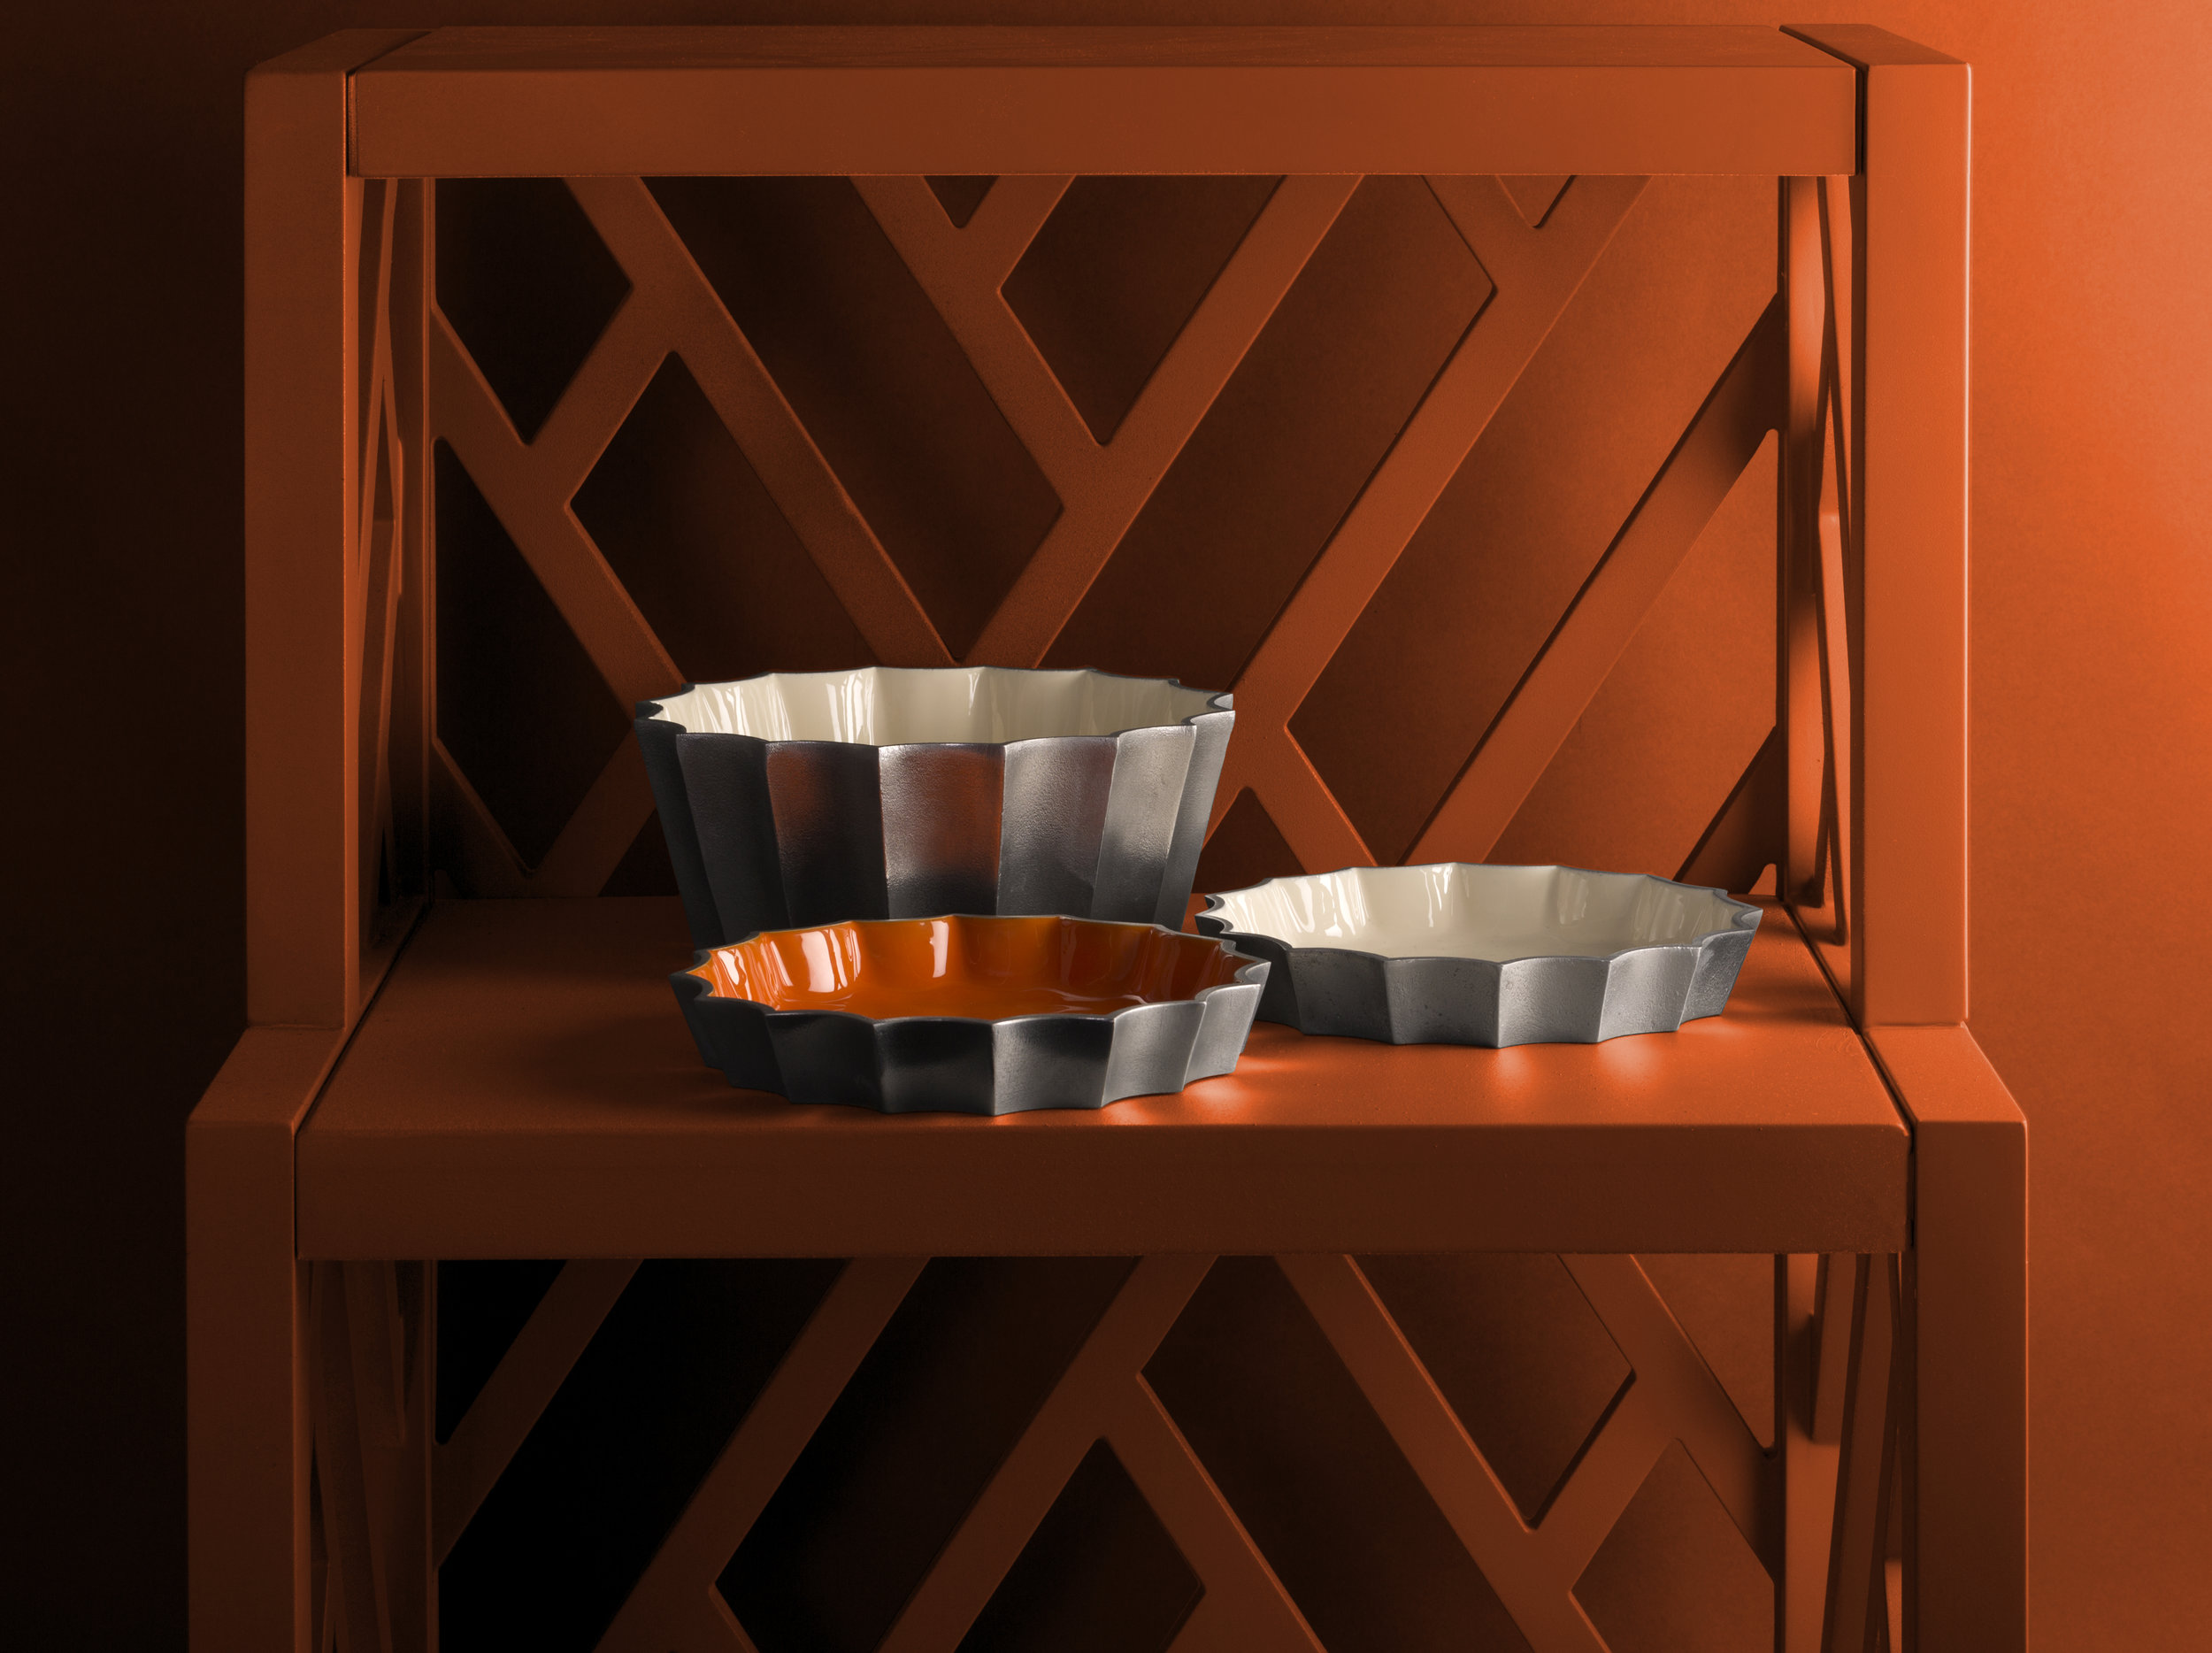 Marigold_Categories_Bowls and Dishes_Fluted.jpg